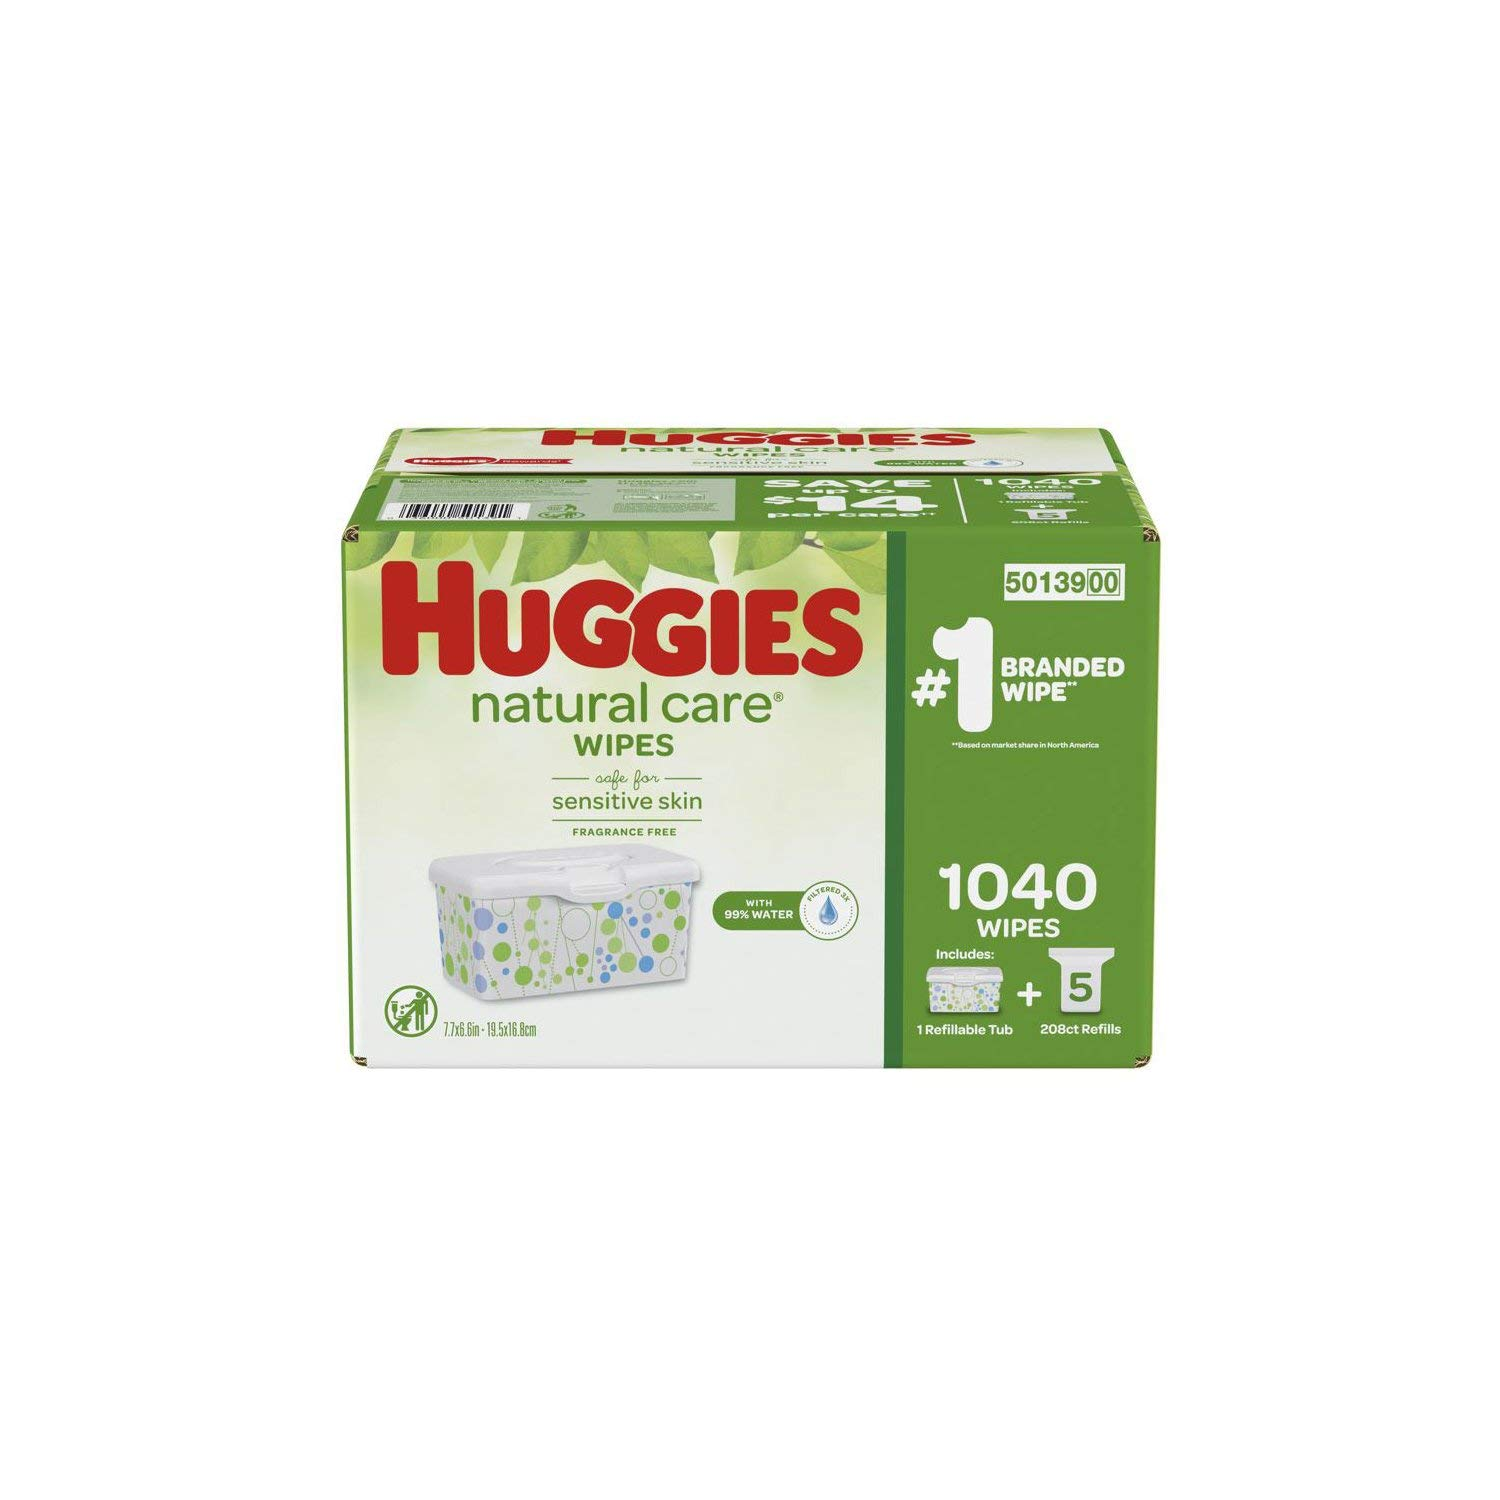 Huggies Natural Care Baby Wipe Refill, Fragrance Free (1,040 ct.) by Huggies (Image #1)